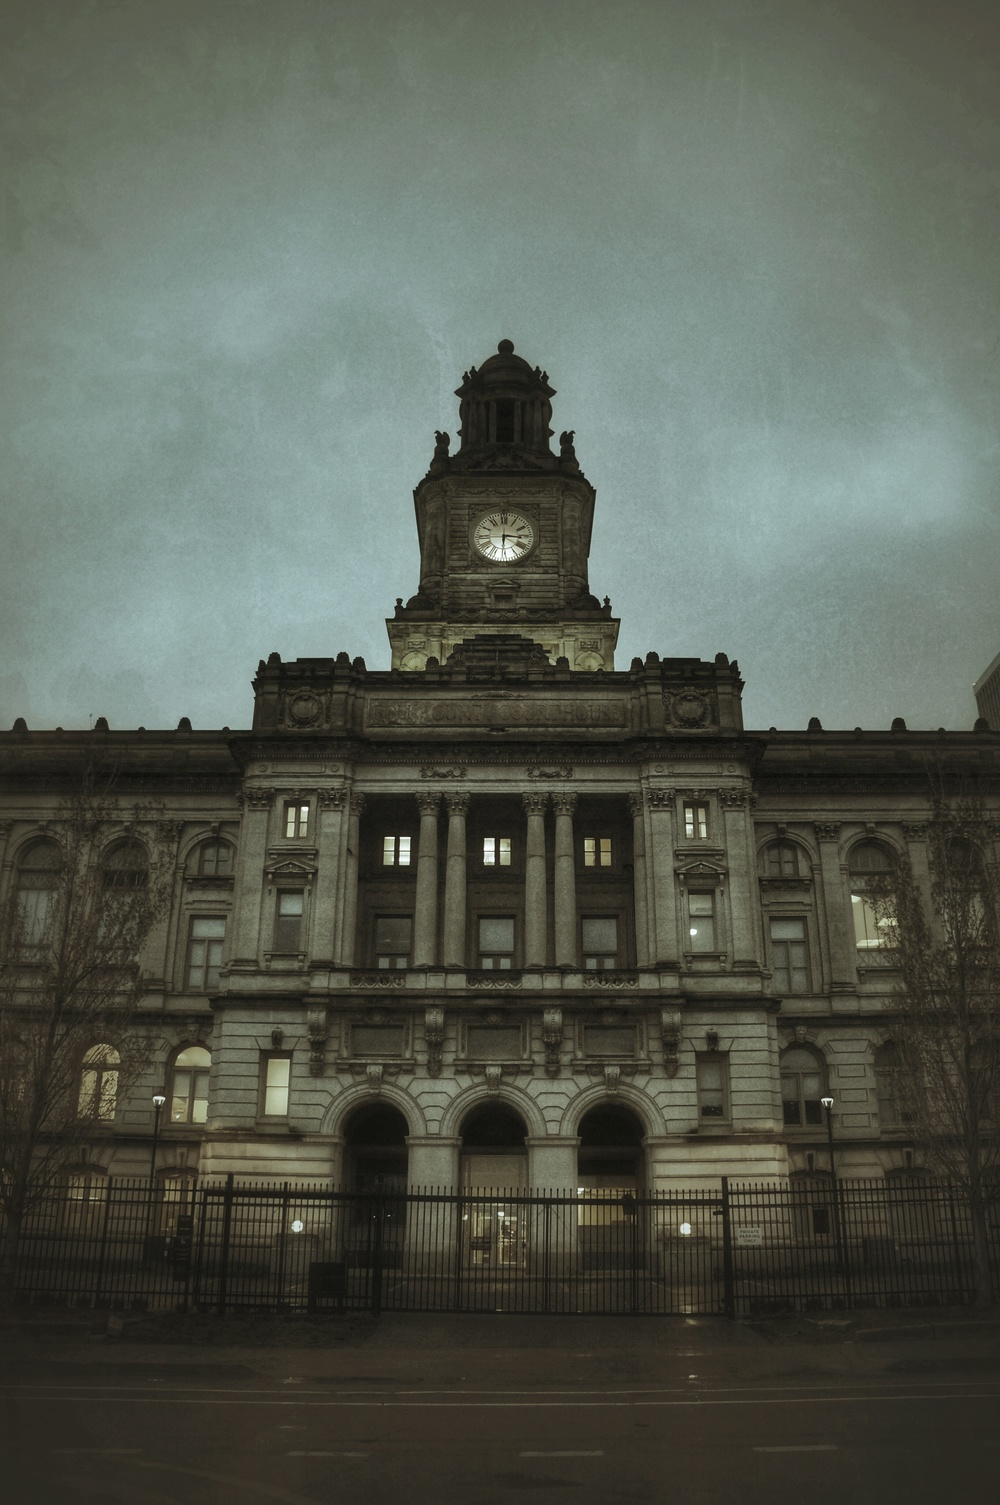 Polk County Courthouse in Des Moines, Iowa